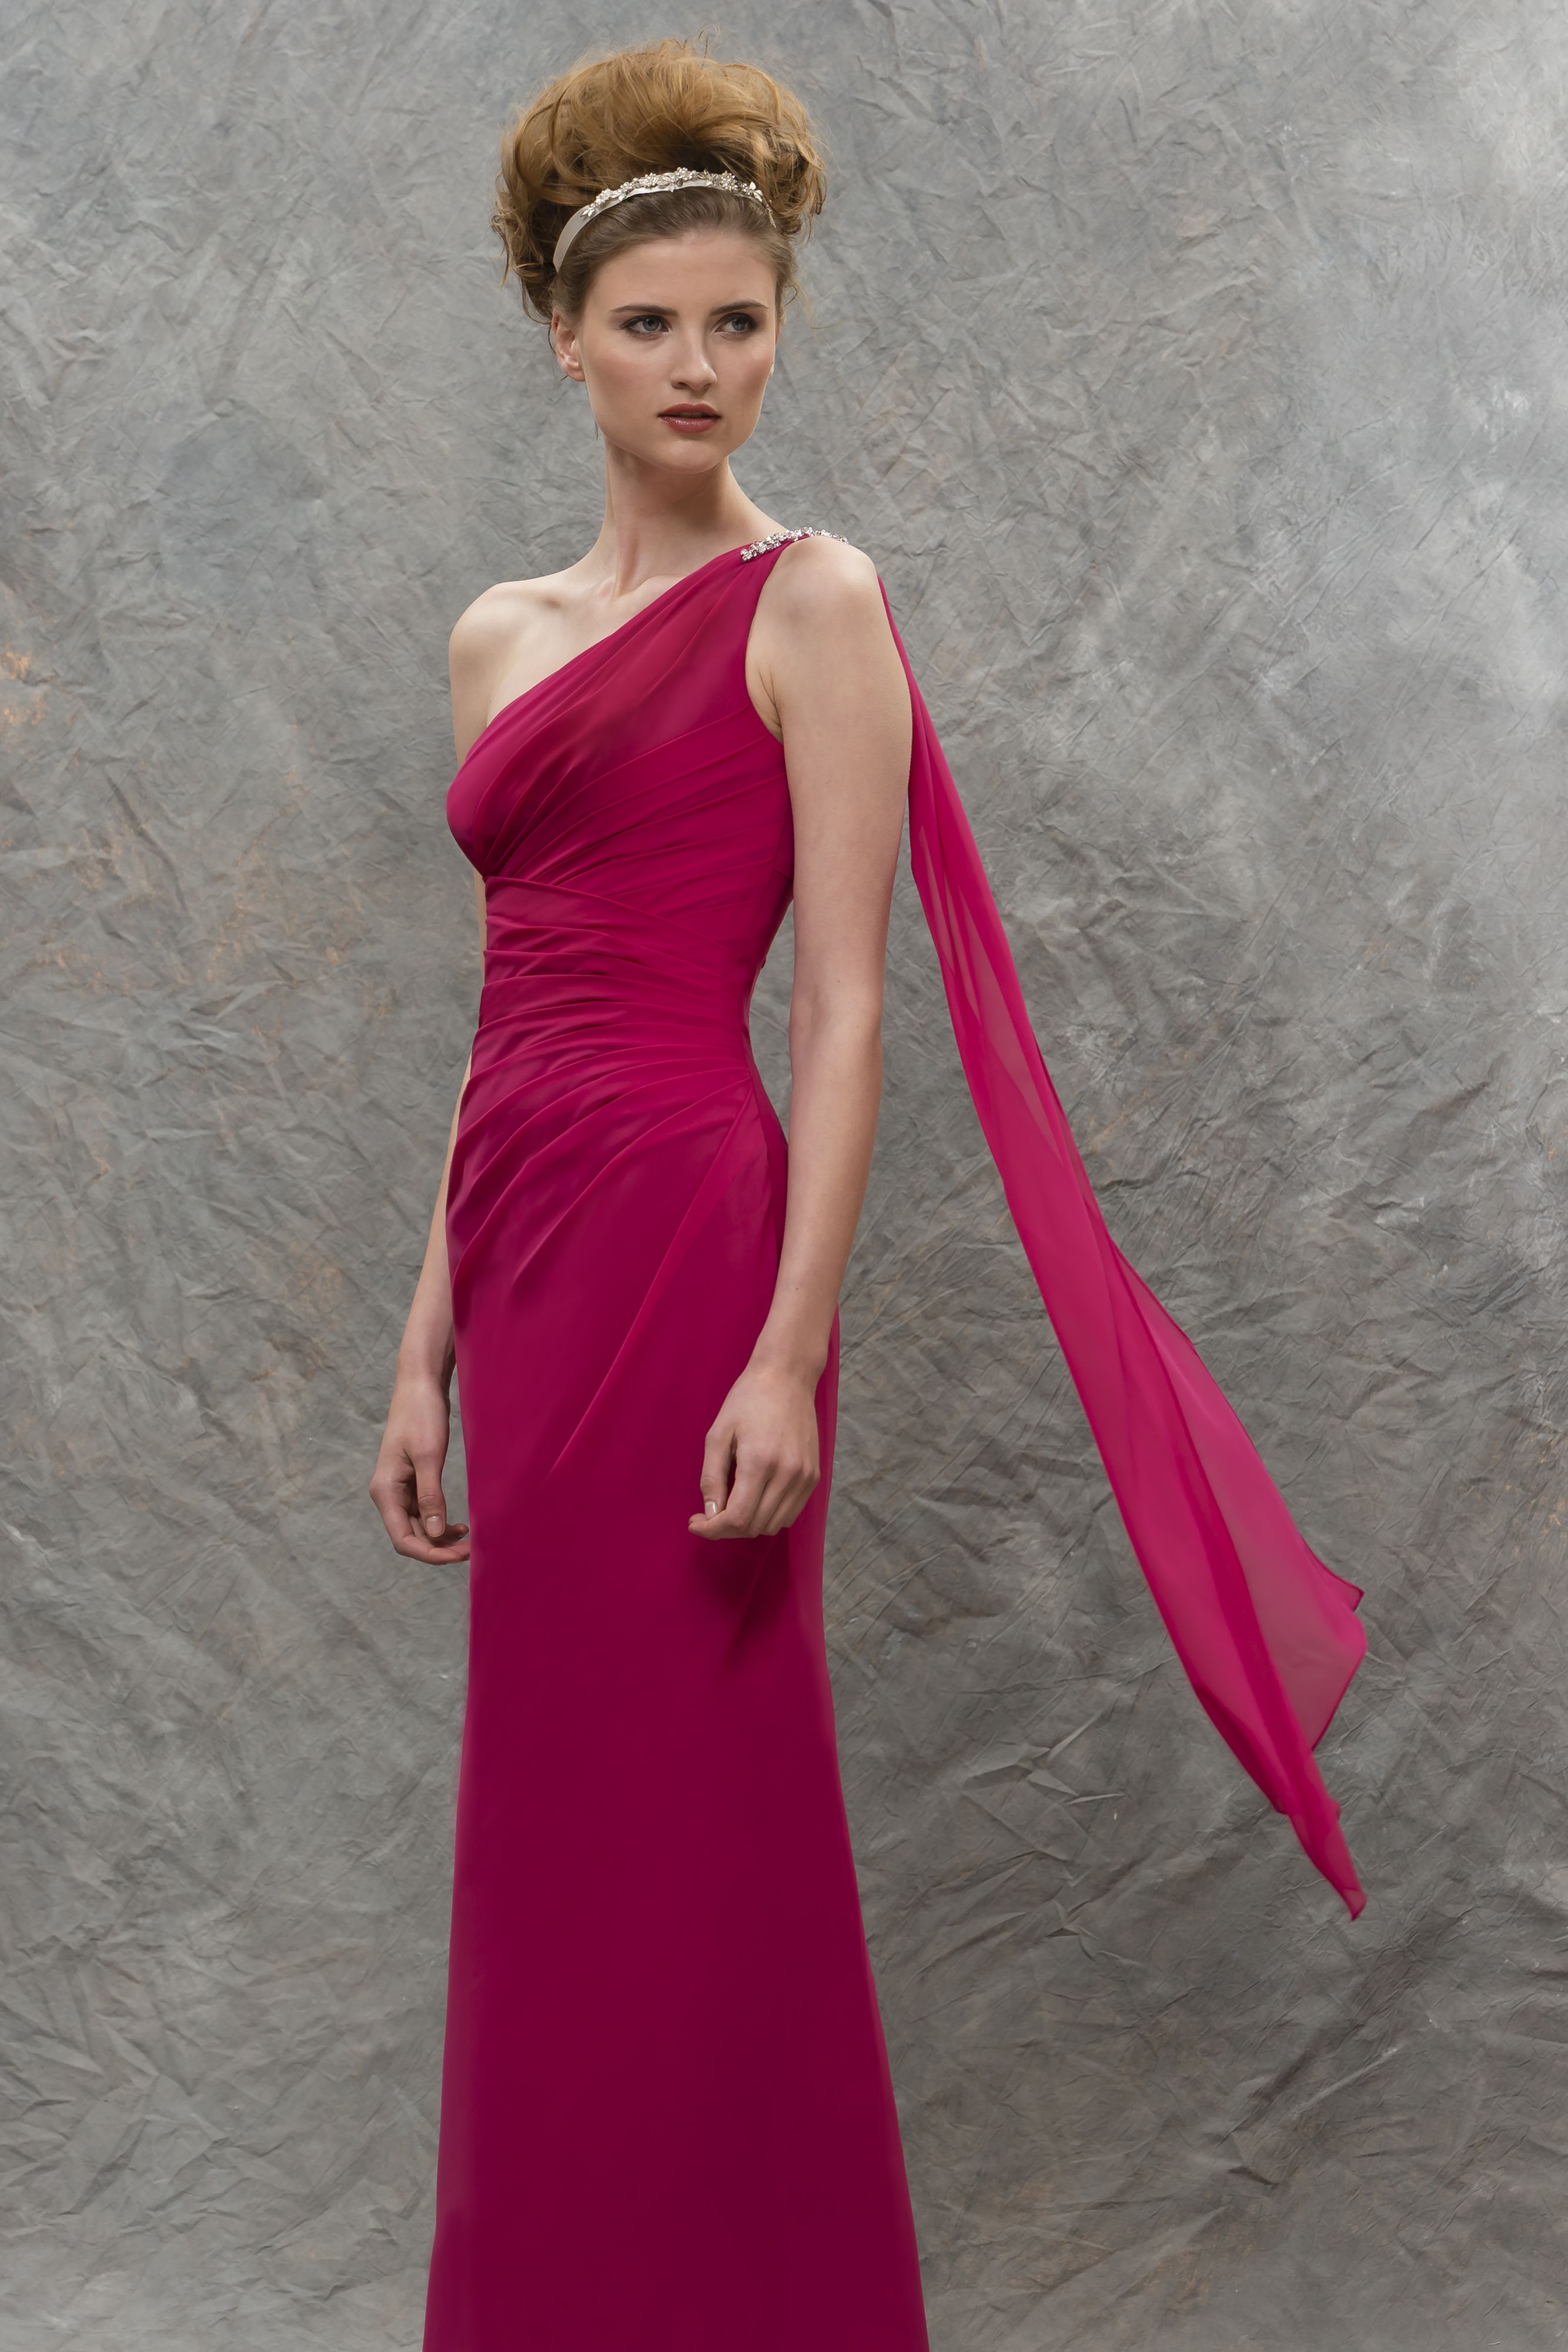 M586 chiffon bridesmaid dress with one shoulder detail and chiffon bridesmaid dresses ombrellifo Image collections